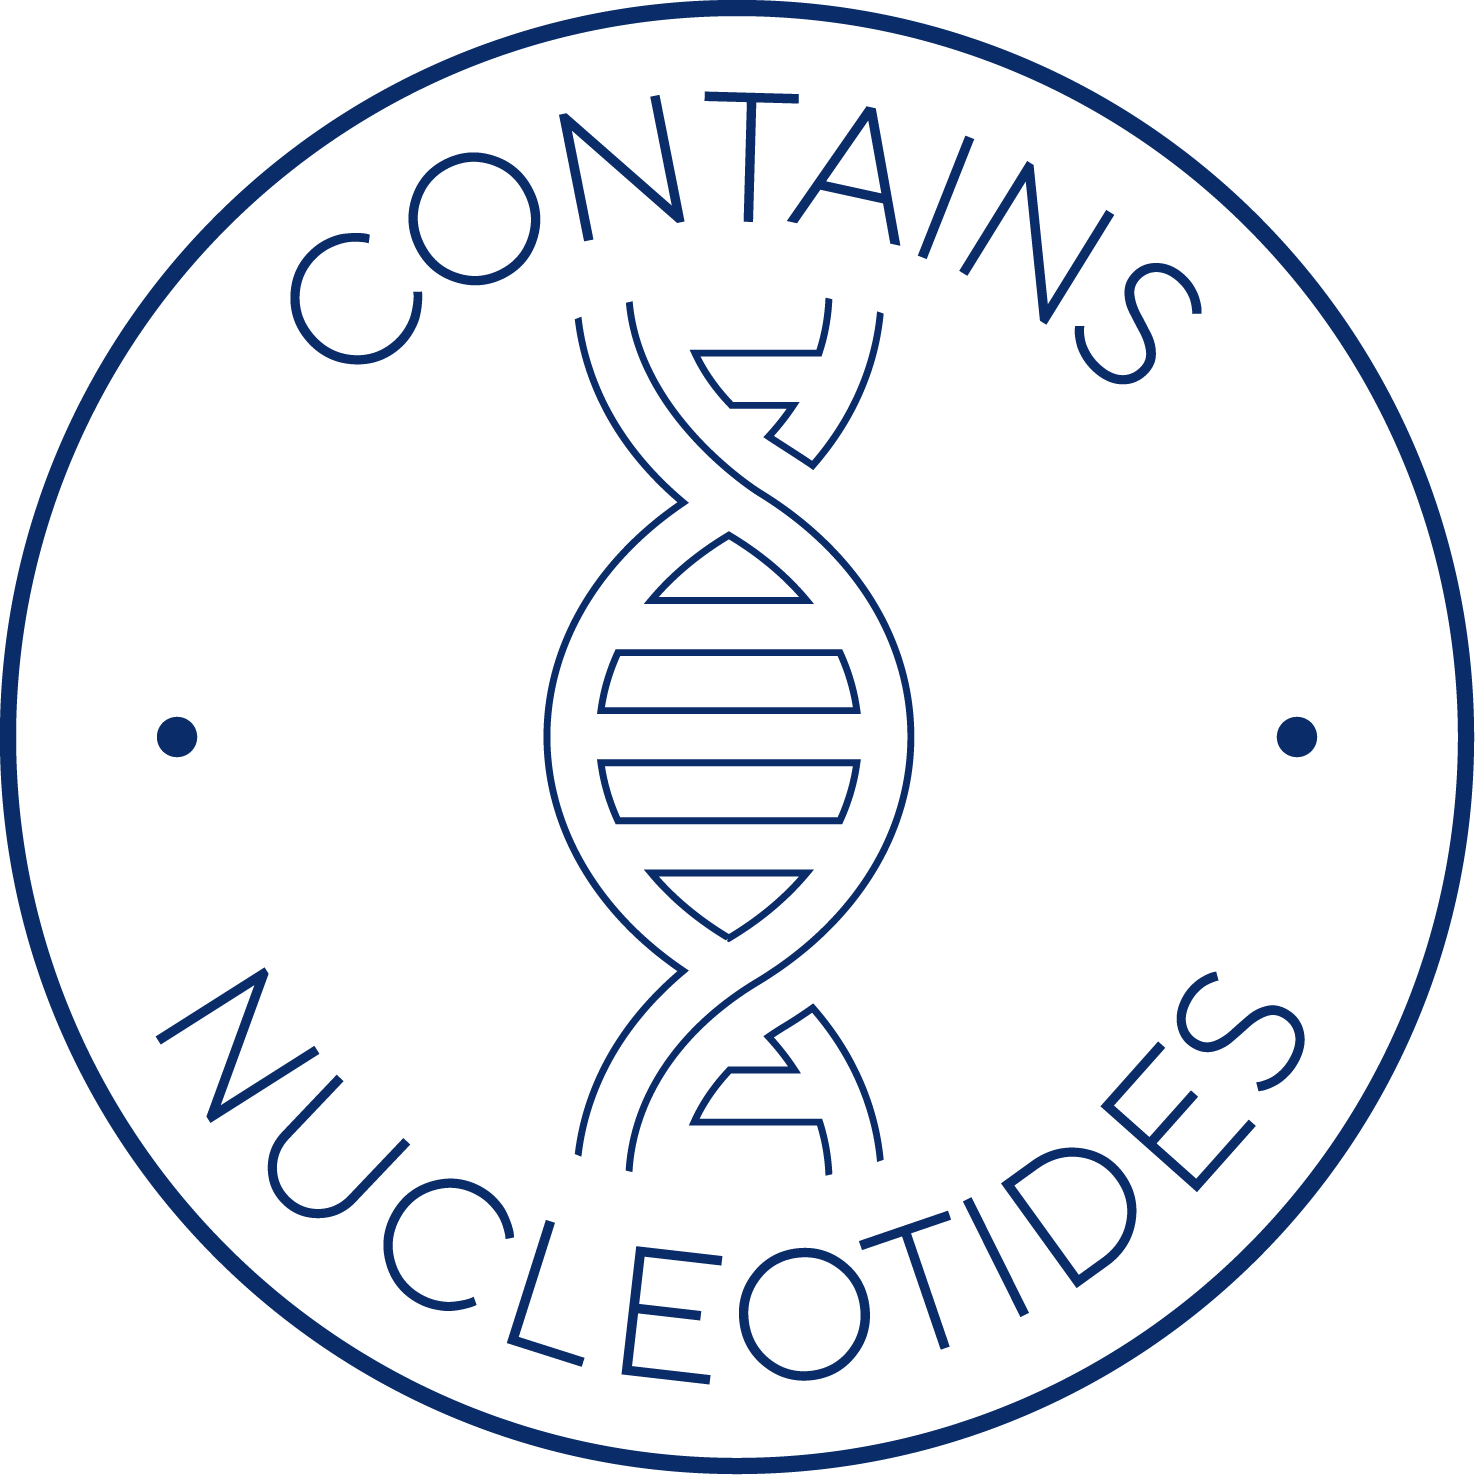 Contains nucleotides